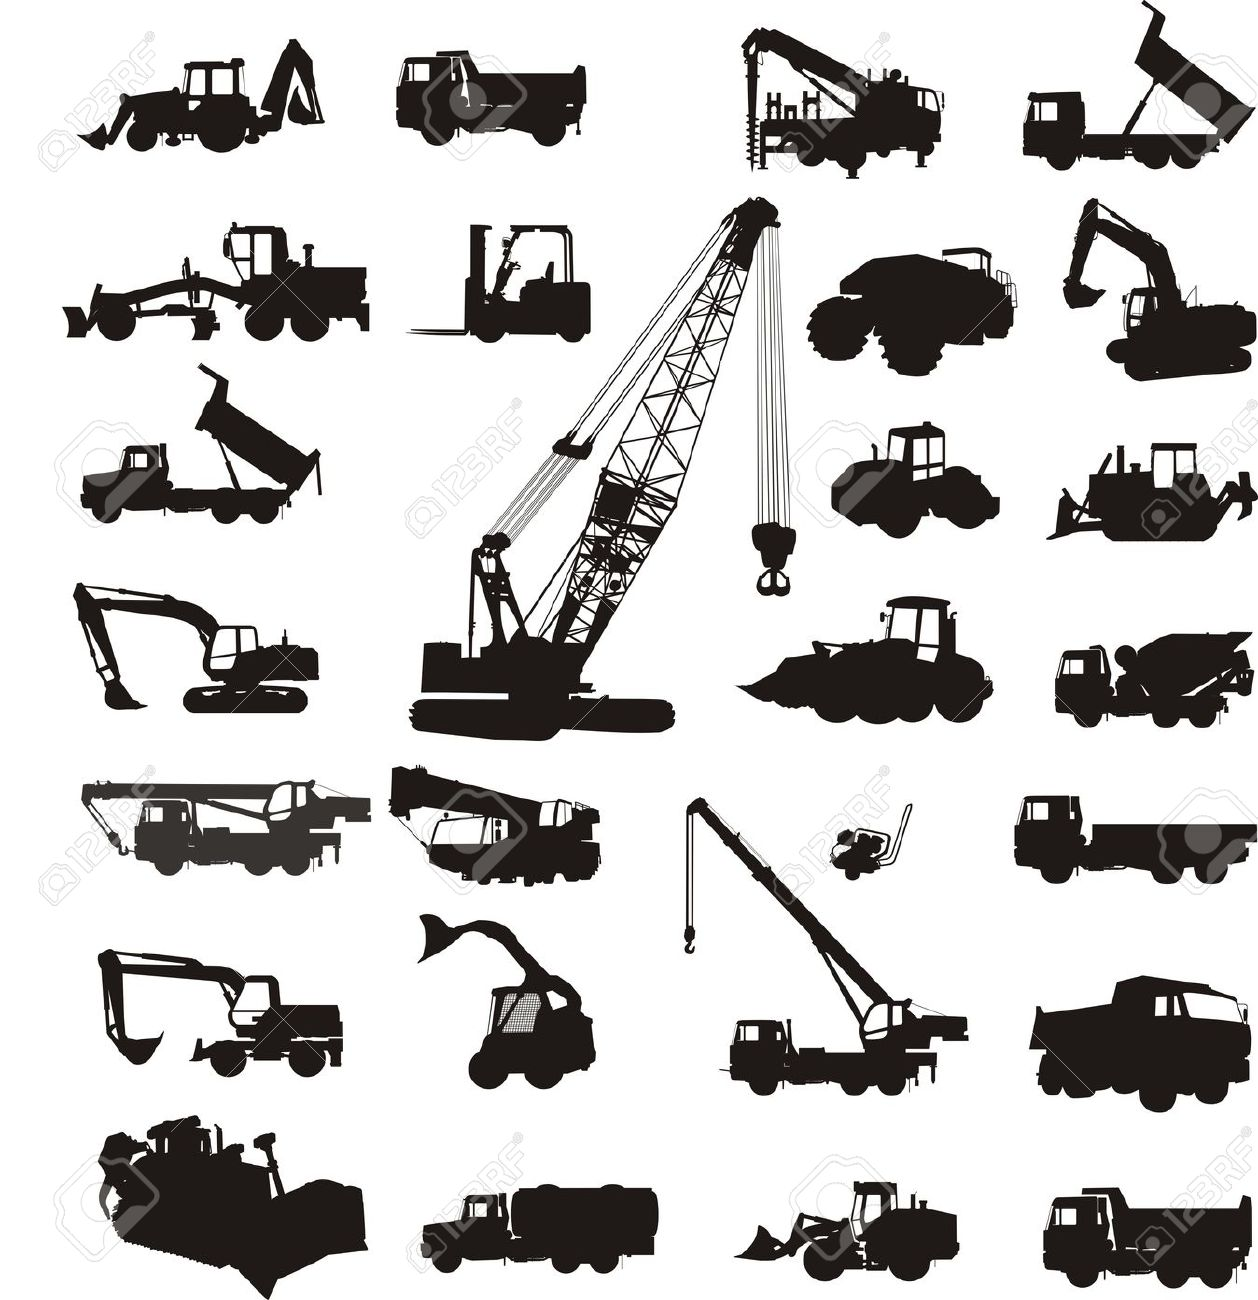 Free Excavating Equipment Cliparts Download Free Clip Art Free Clip Art On Clipart Library